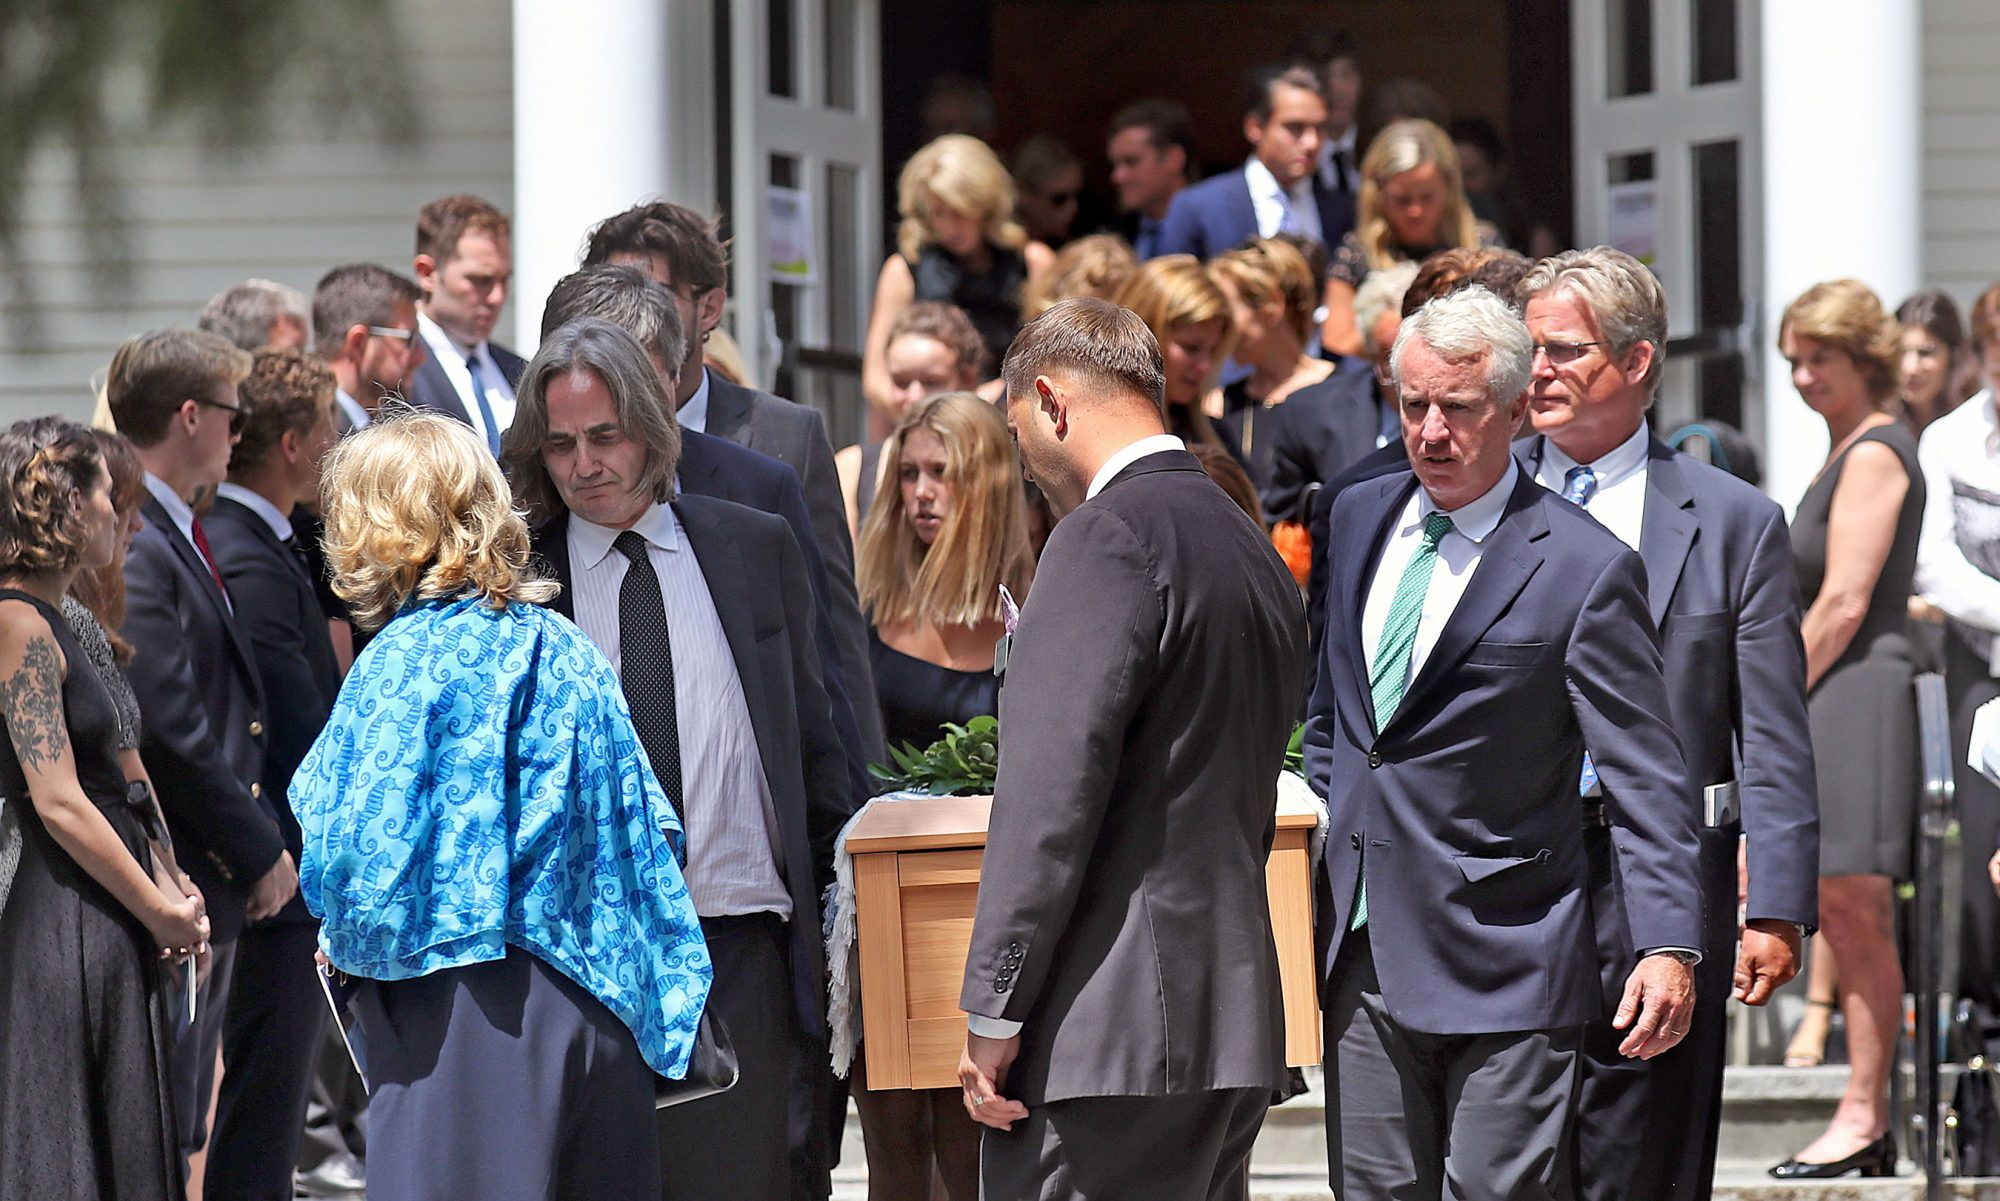 Courtney Kennedy Hill (L in blue) and Paul Michael Hill (in black tie facing carrying casket L) and other Kennedy family members carry the casket of Saoirse Roisin Kennedy Hill at Our Lady of Victory Church in Centerville, Massachusetts, USA, 05 August 2019